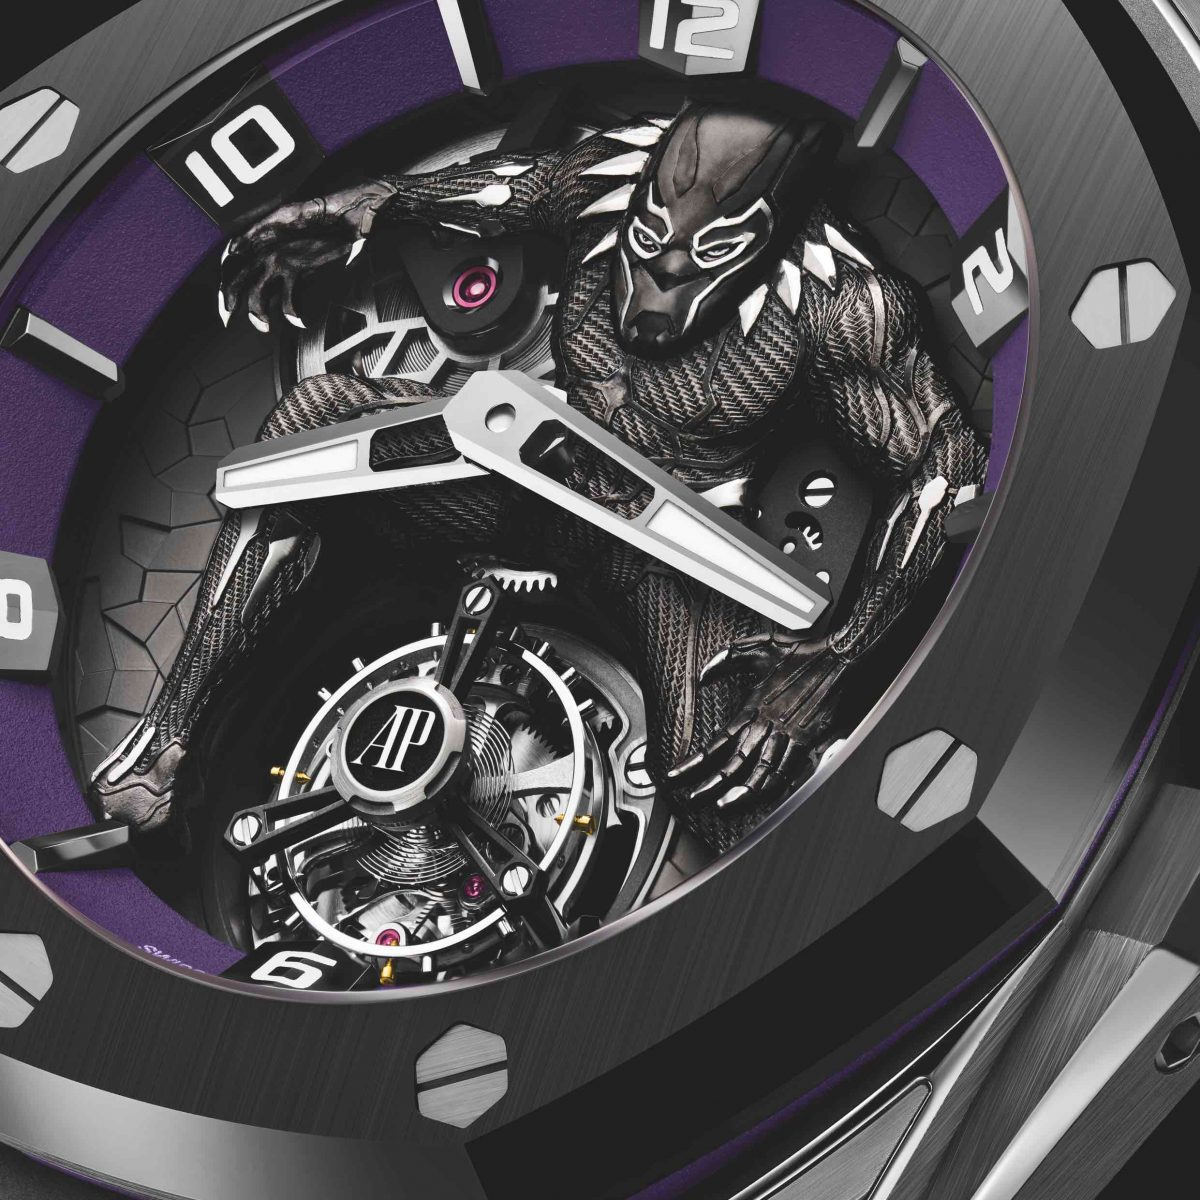 The RO Concept Black Panther is powered by the manual-wind cal. 2965, regulated by its flying tourbillon at 6 o'clock.